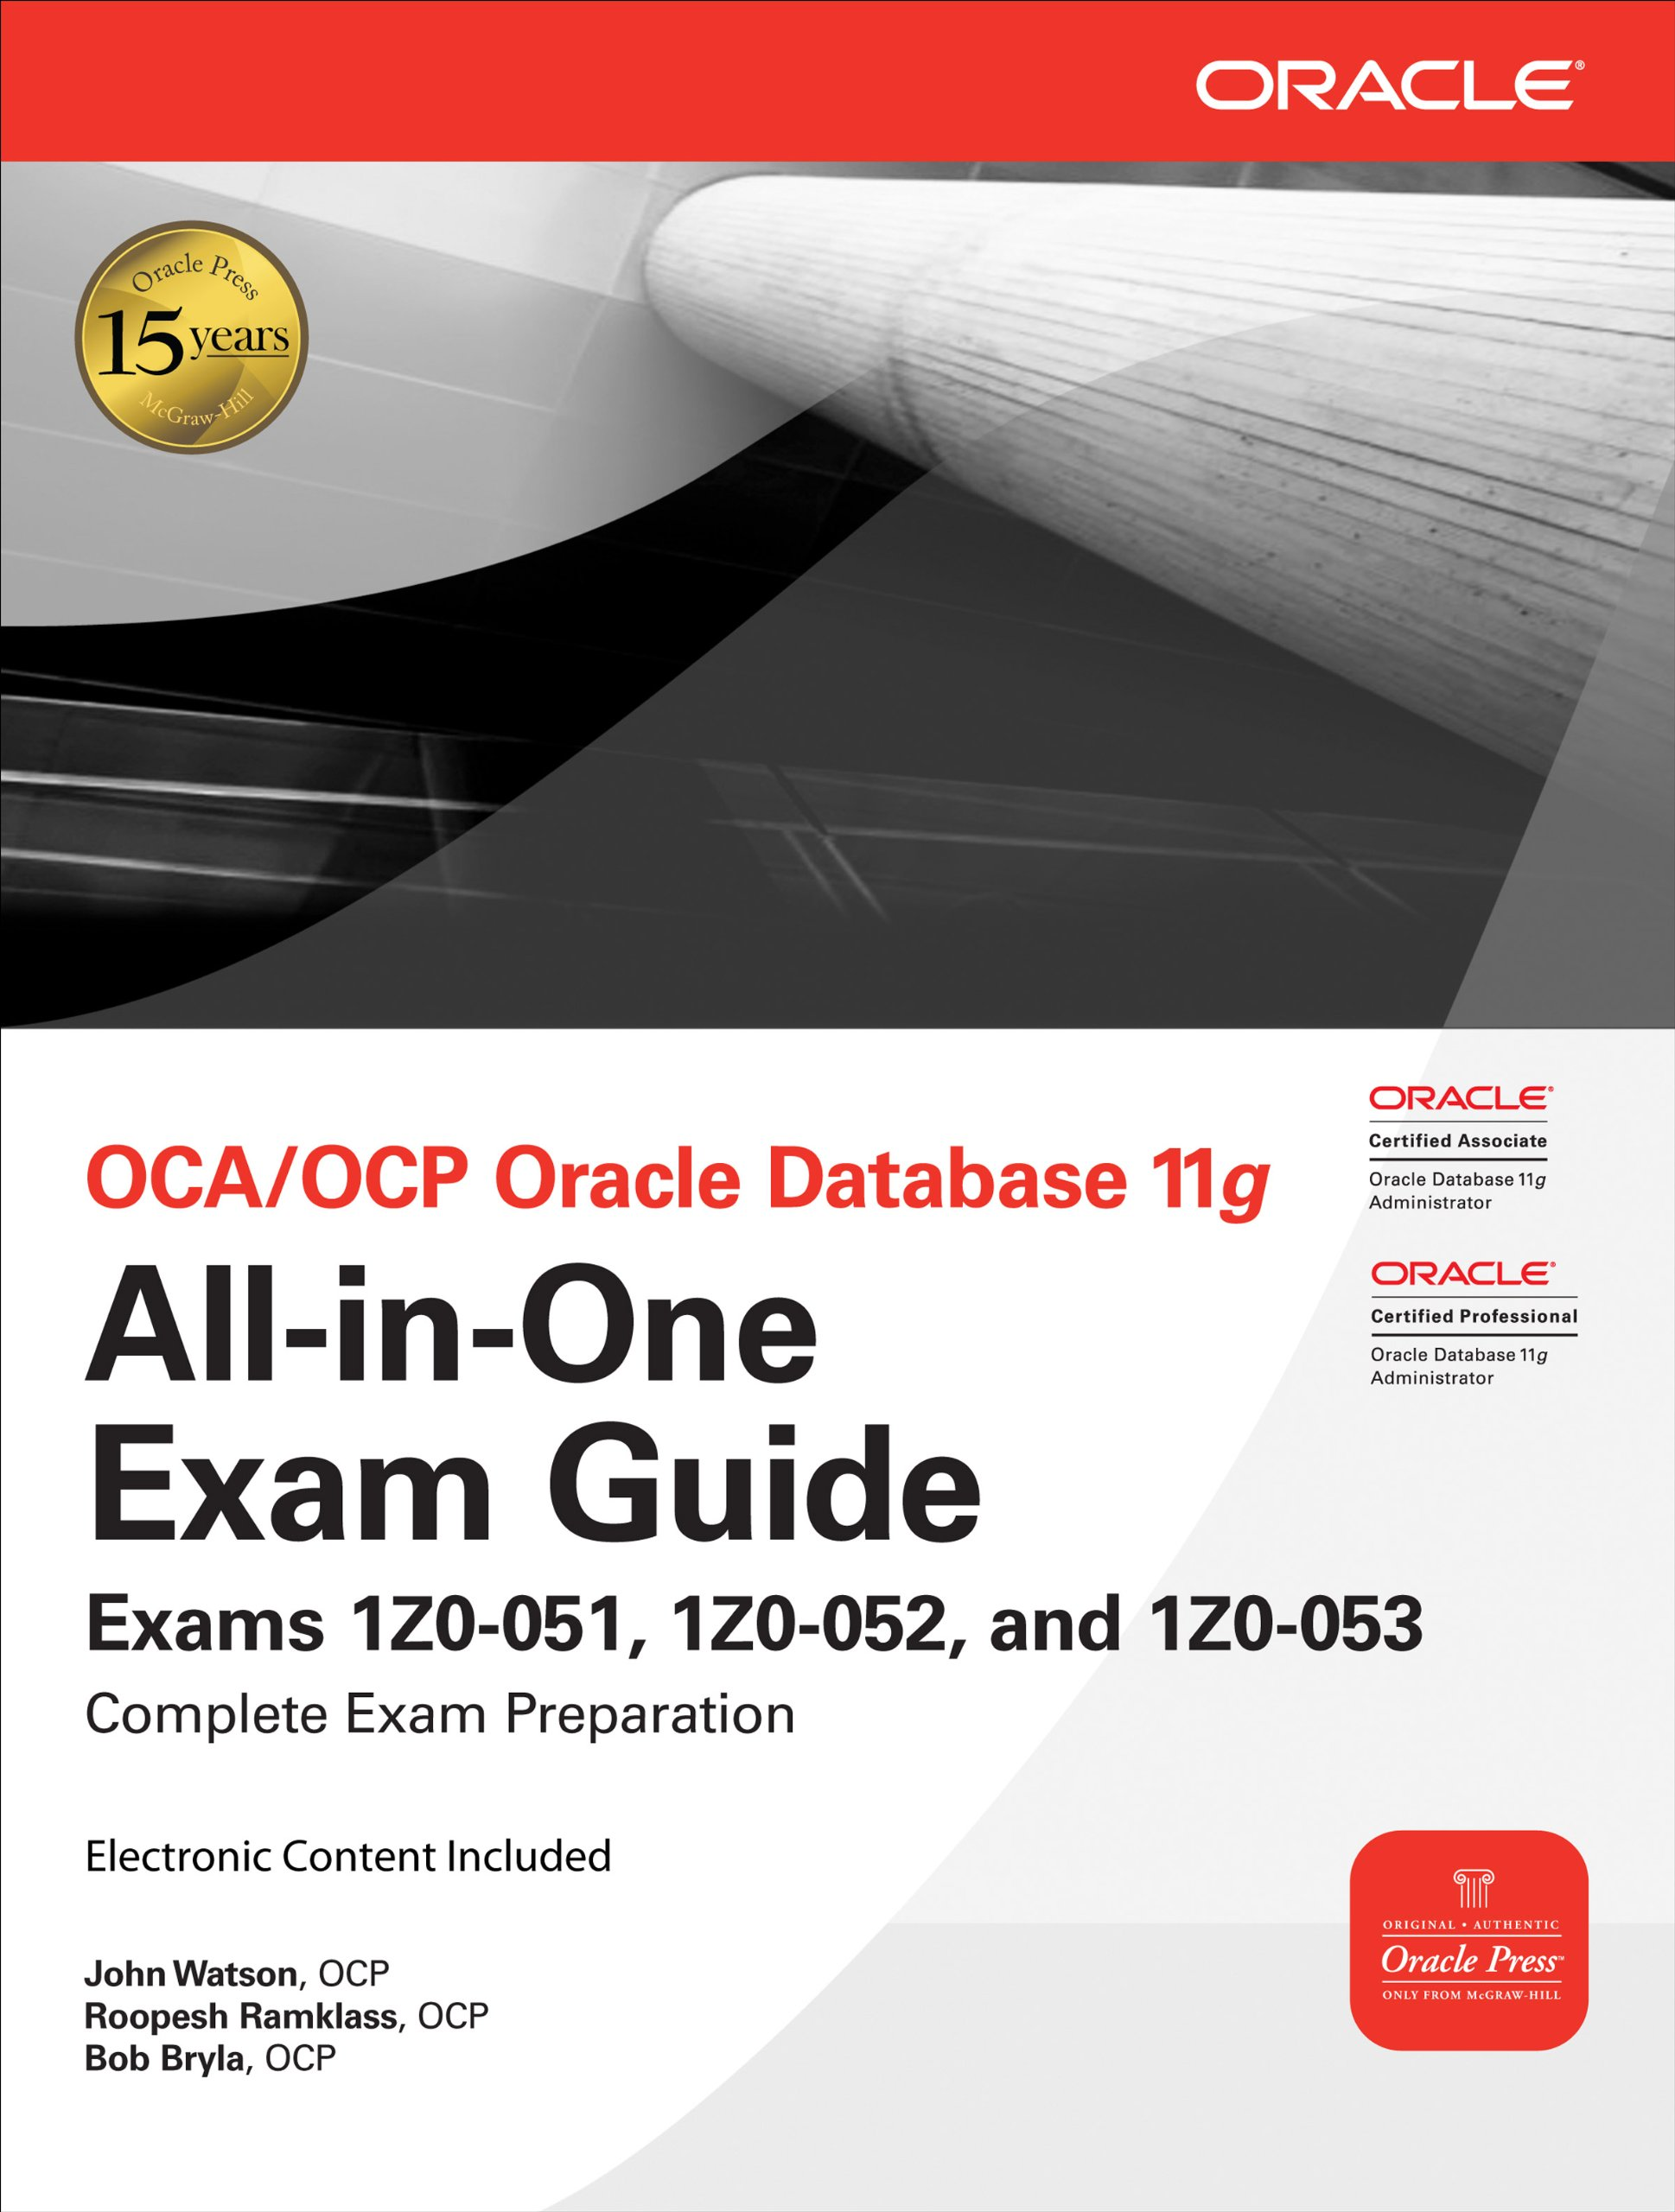 Download OCA OCP Oracle Database 11g All in One Exam Guide: Exams 1Z0 051, 1Z0 052, 1Z0 053 (Oracle Press) (English Edition)